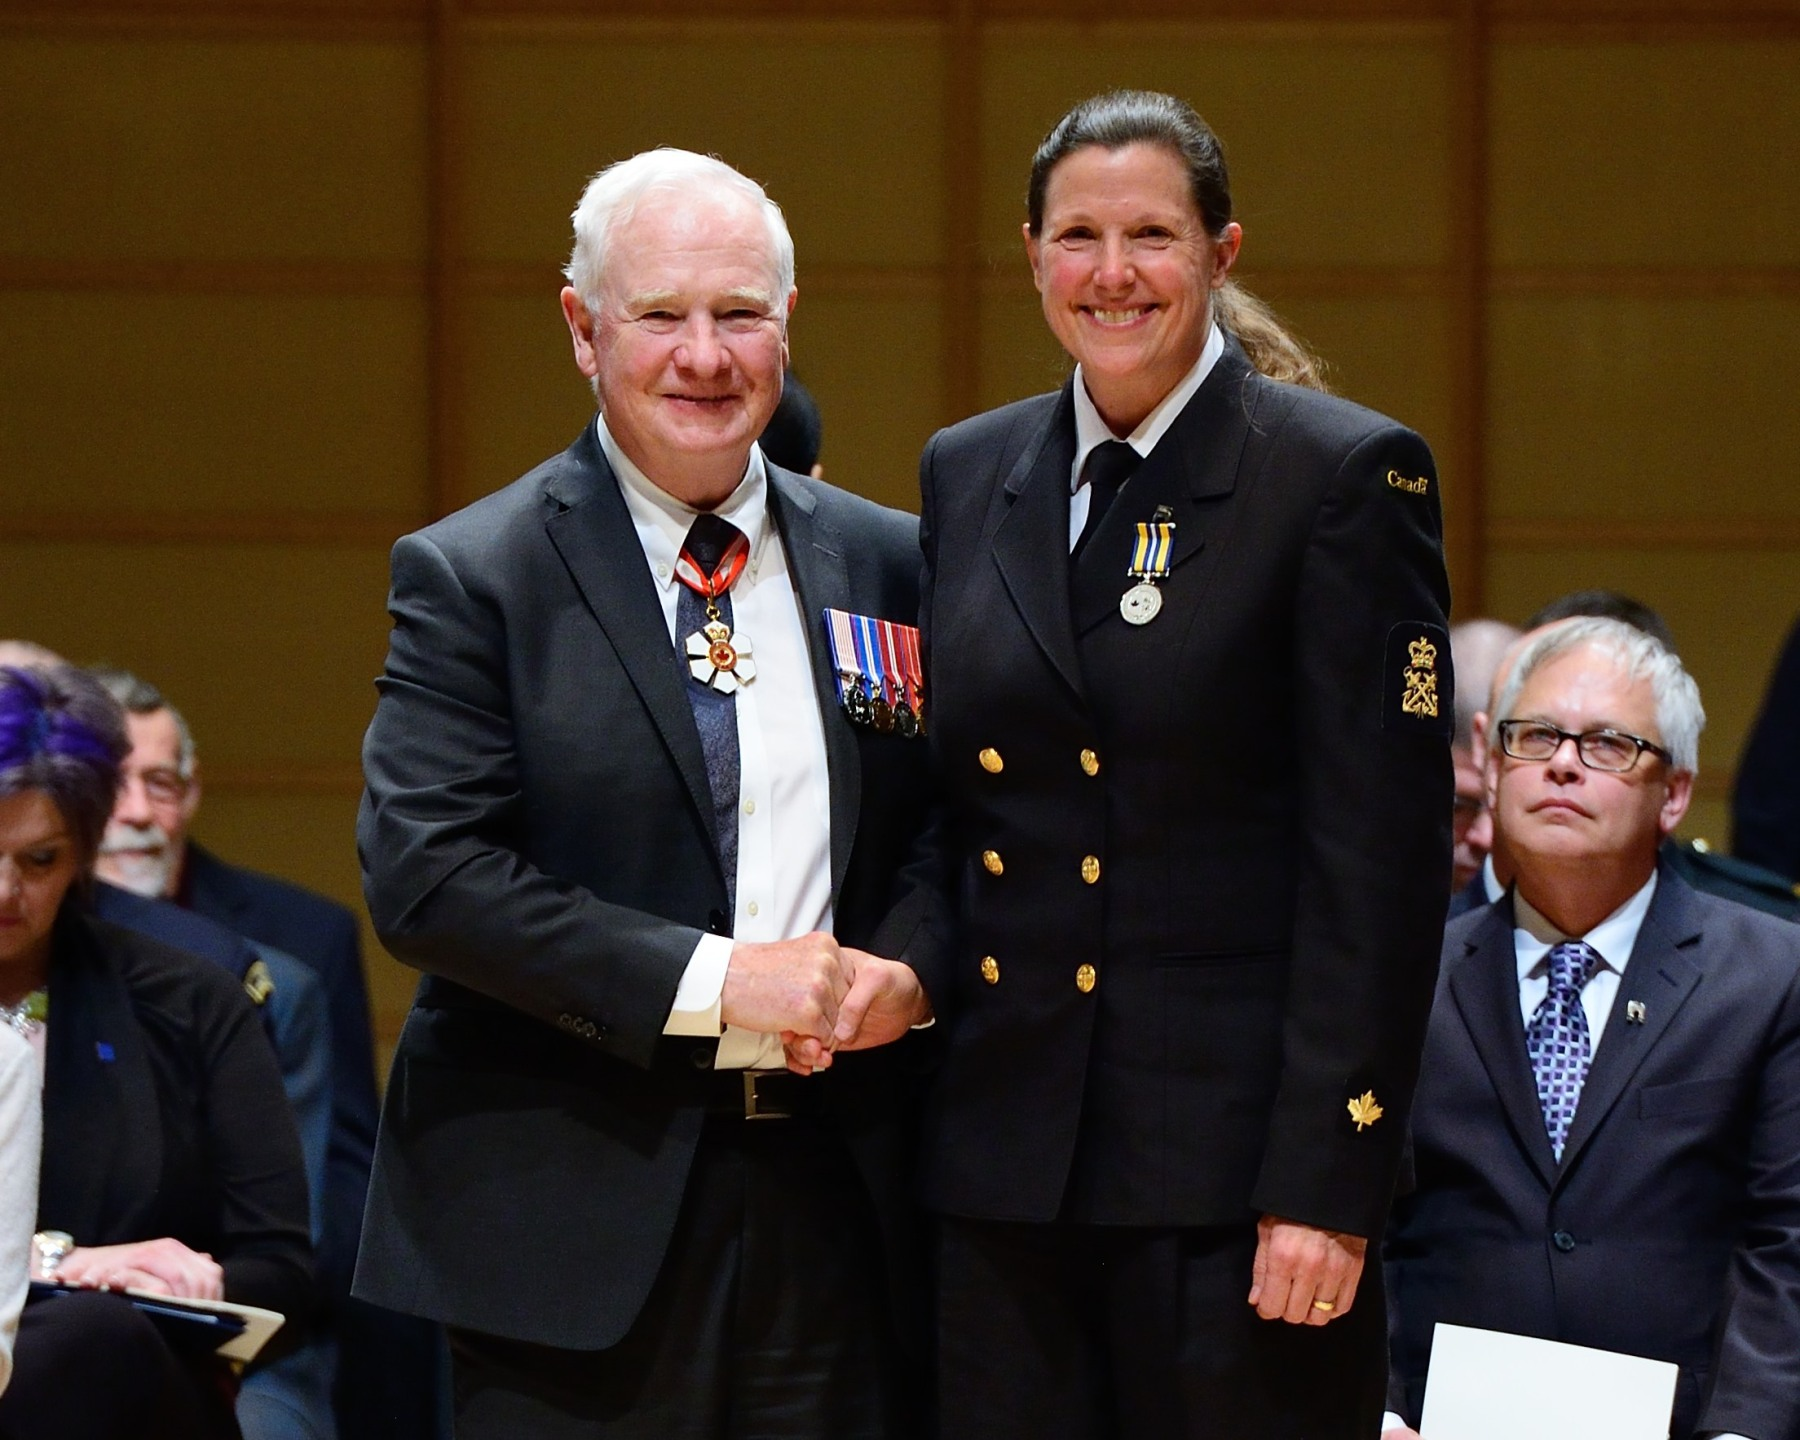 The Canadian Coast Guard Exemplary Service Medal was presented to Ms. Kelly D. Alendal, Operations Specialist at the Canadian Coast Guard, in recognition of her 20 years of loyal and exemplary service to public safety in Canada.